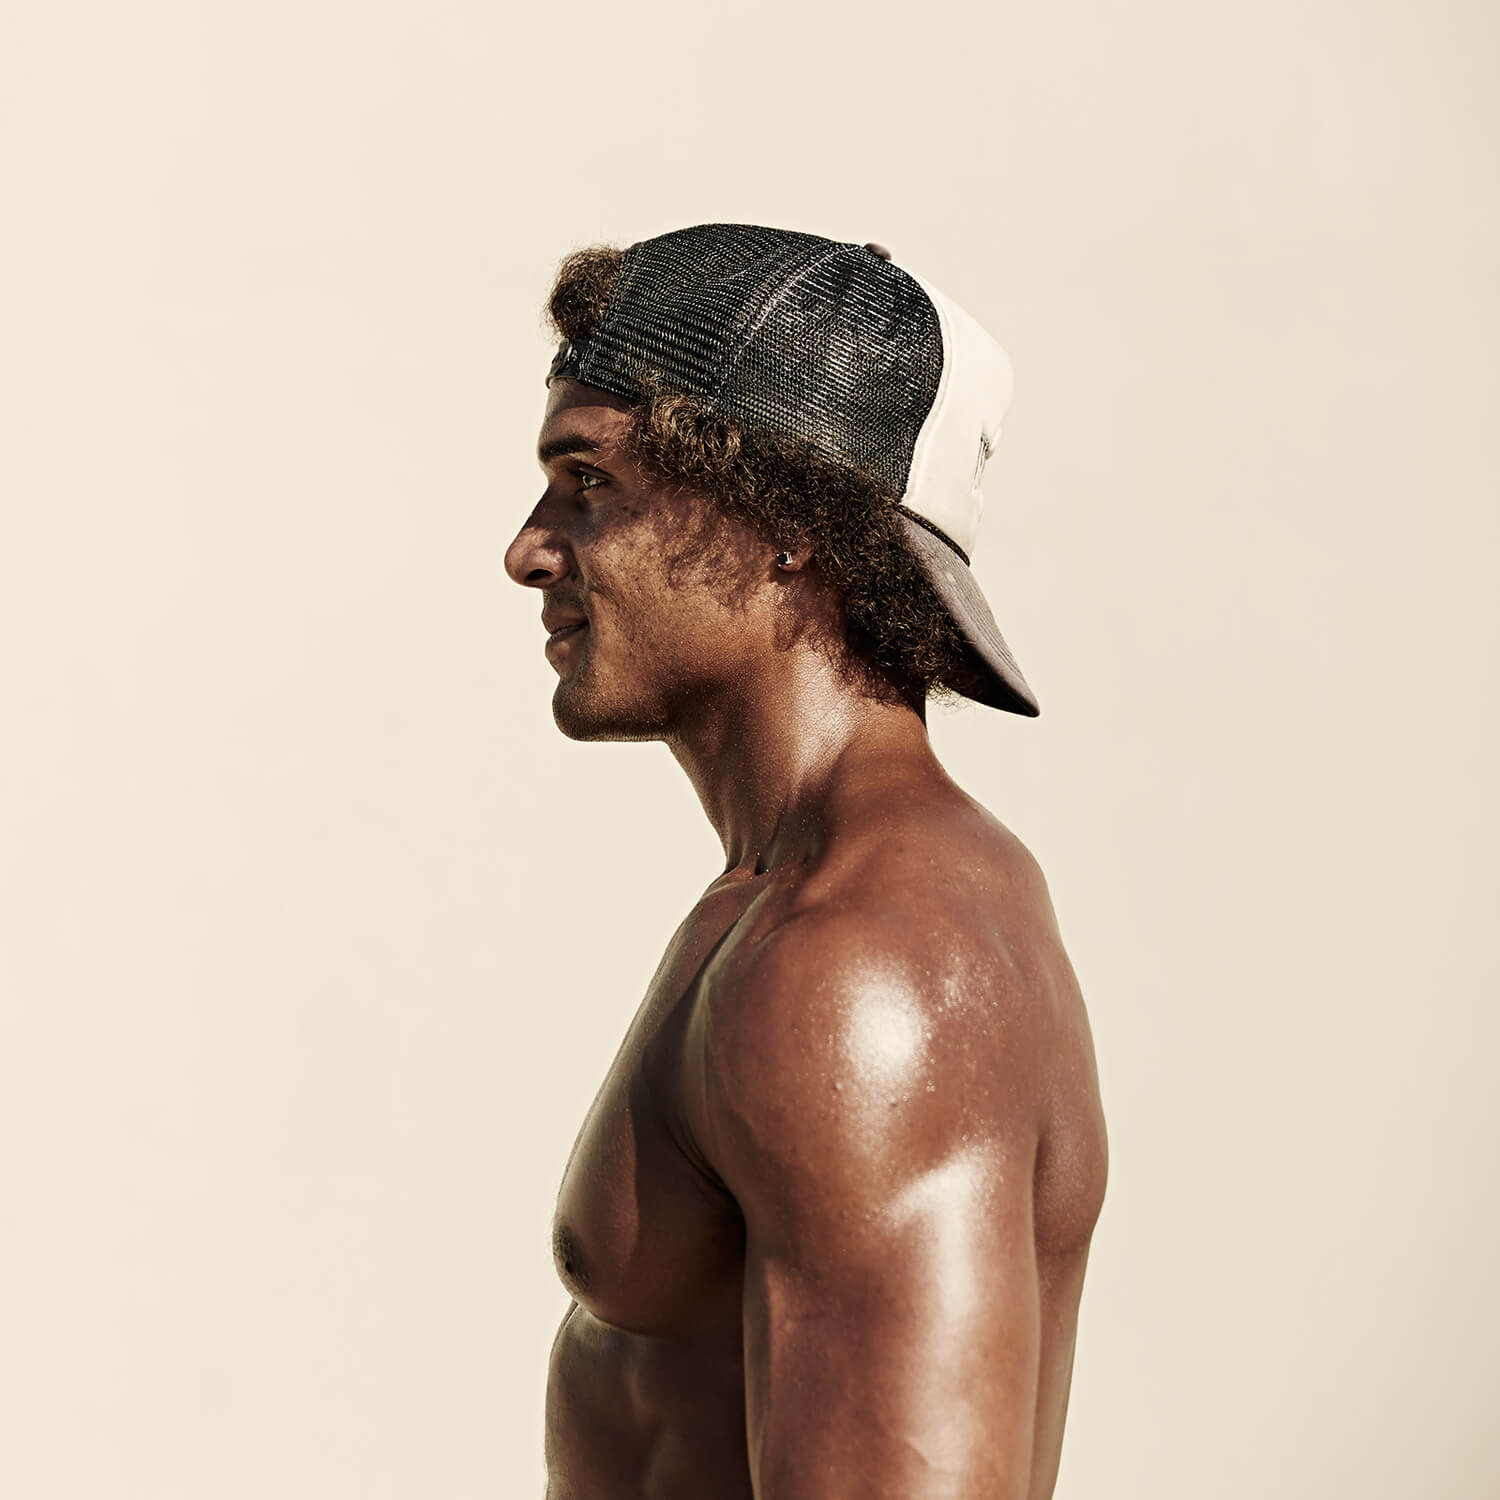 Unified Content, Unified Content Toronto, Aaron Cobb, Athletes, Body Builder, LA, Los Angeles, Muscle Beach, Beach, Workout, Fit, Body Builder, Ripped, Shredded, Athlete, Athlete portrait,